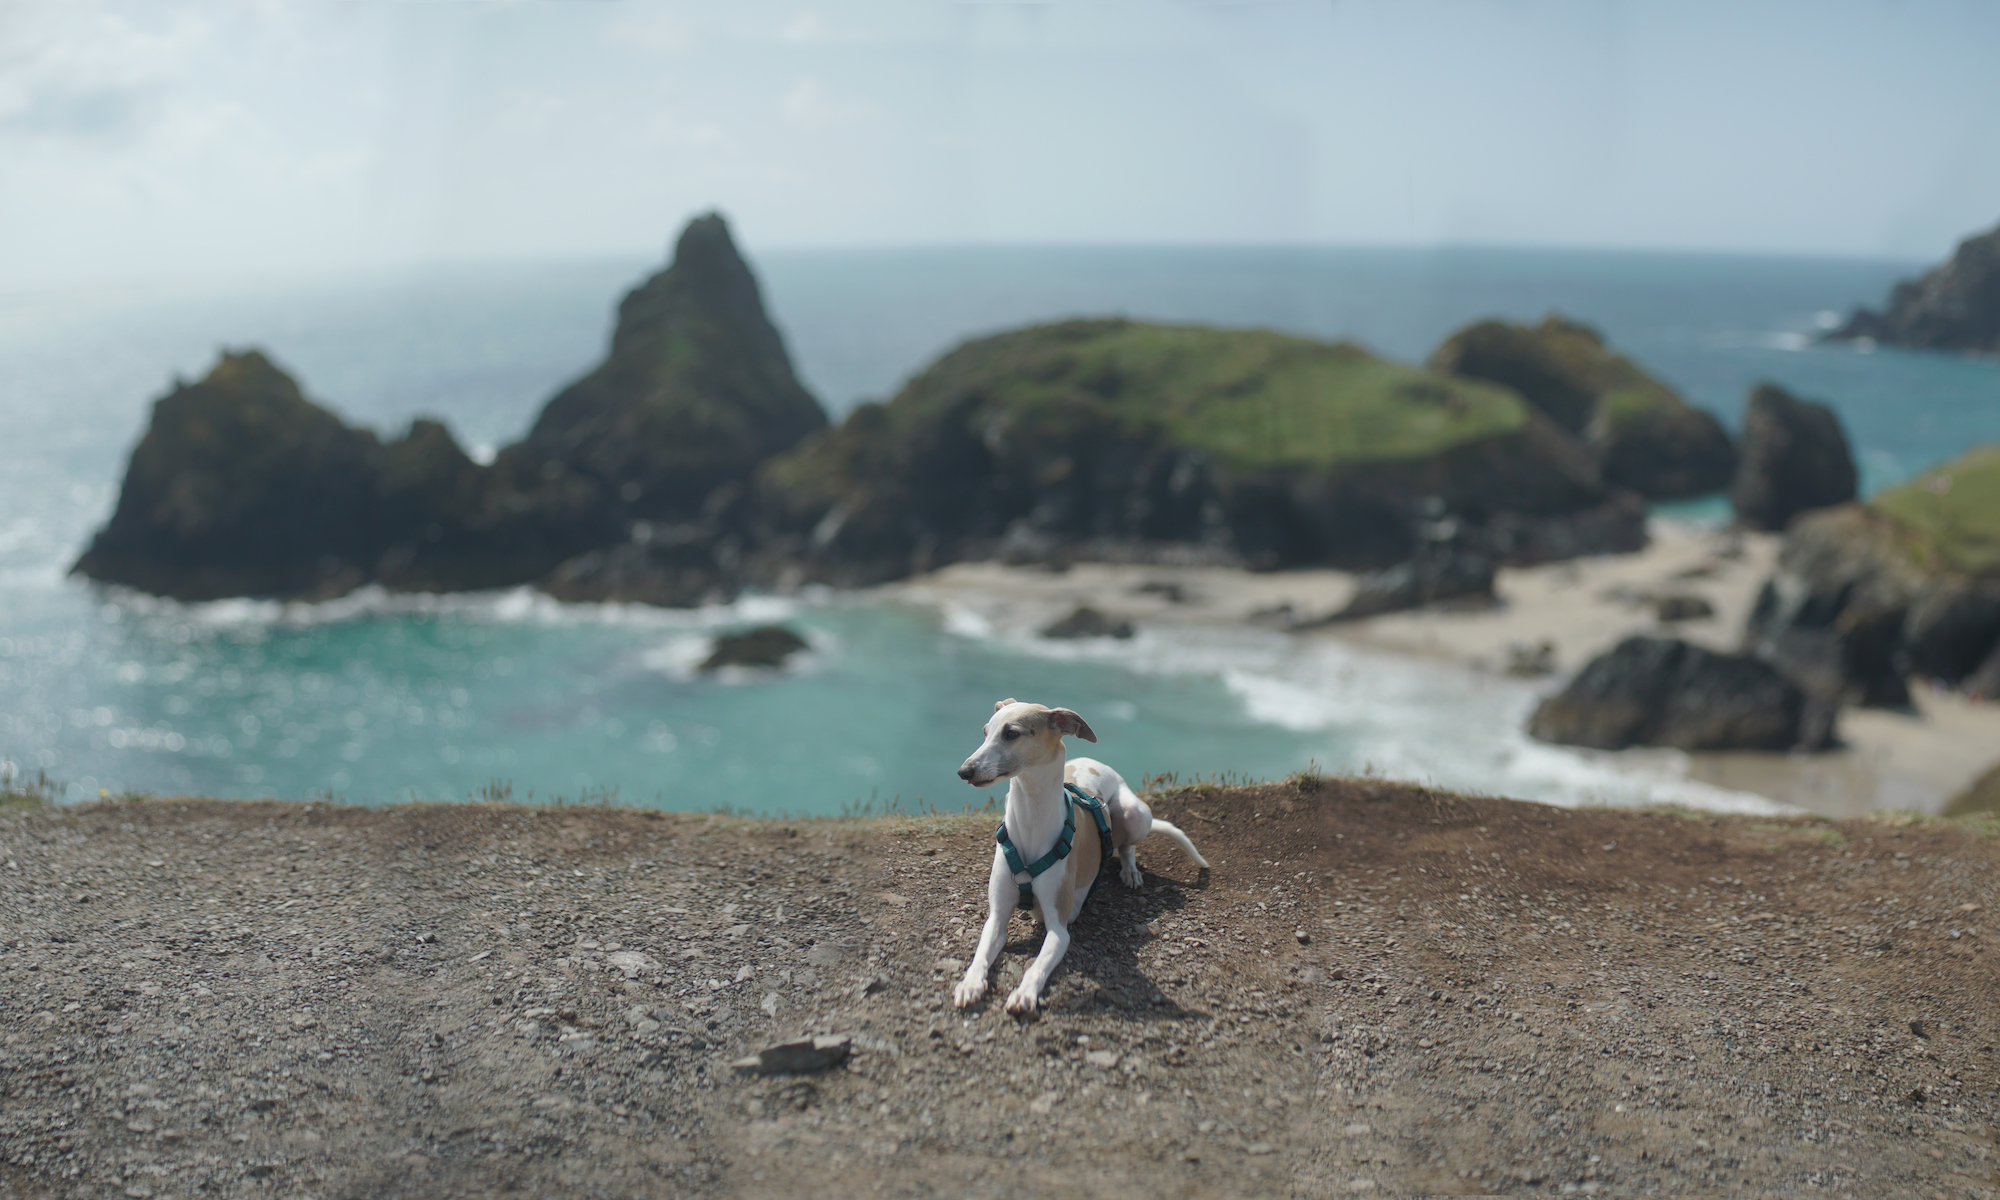 Polly Whippet